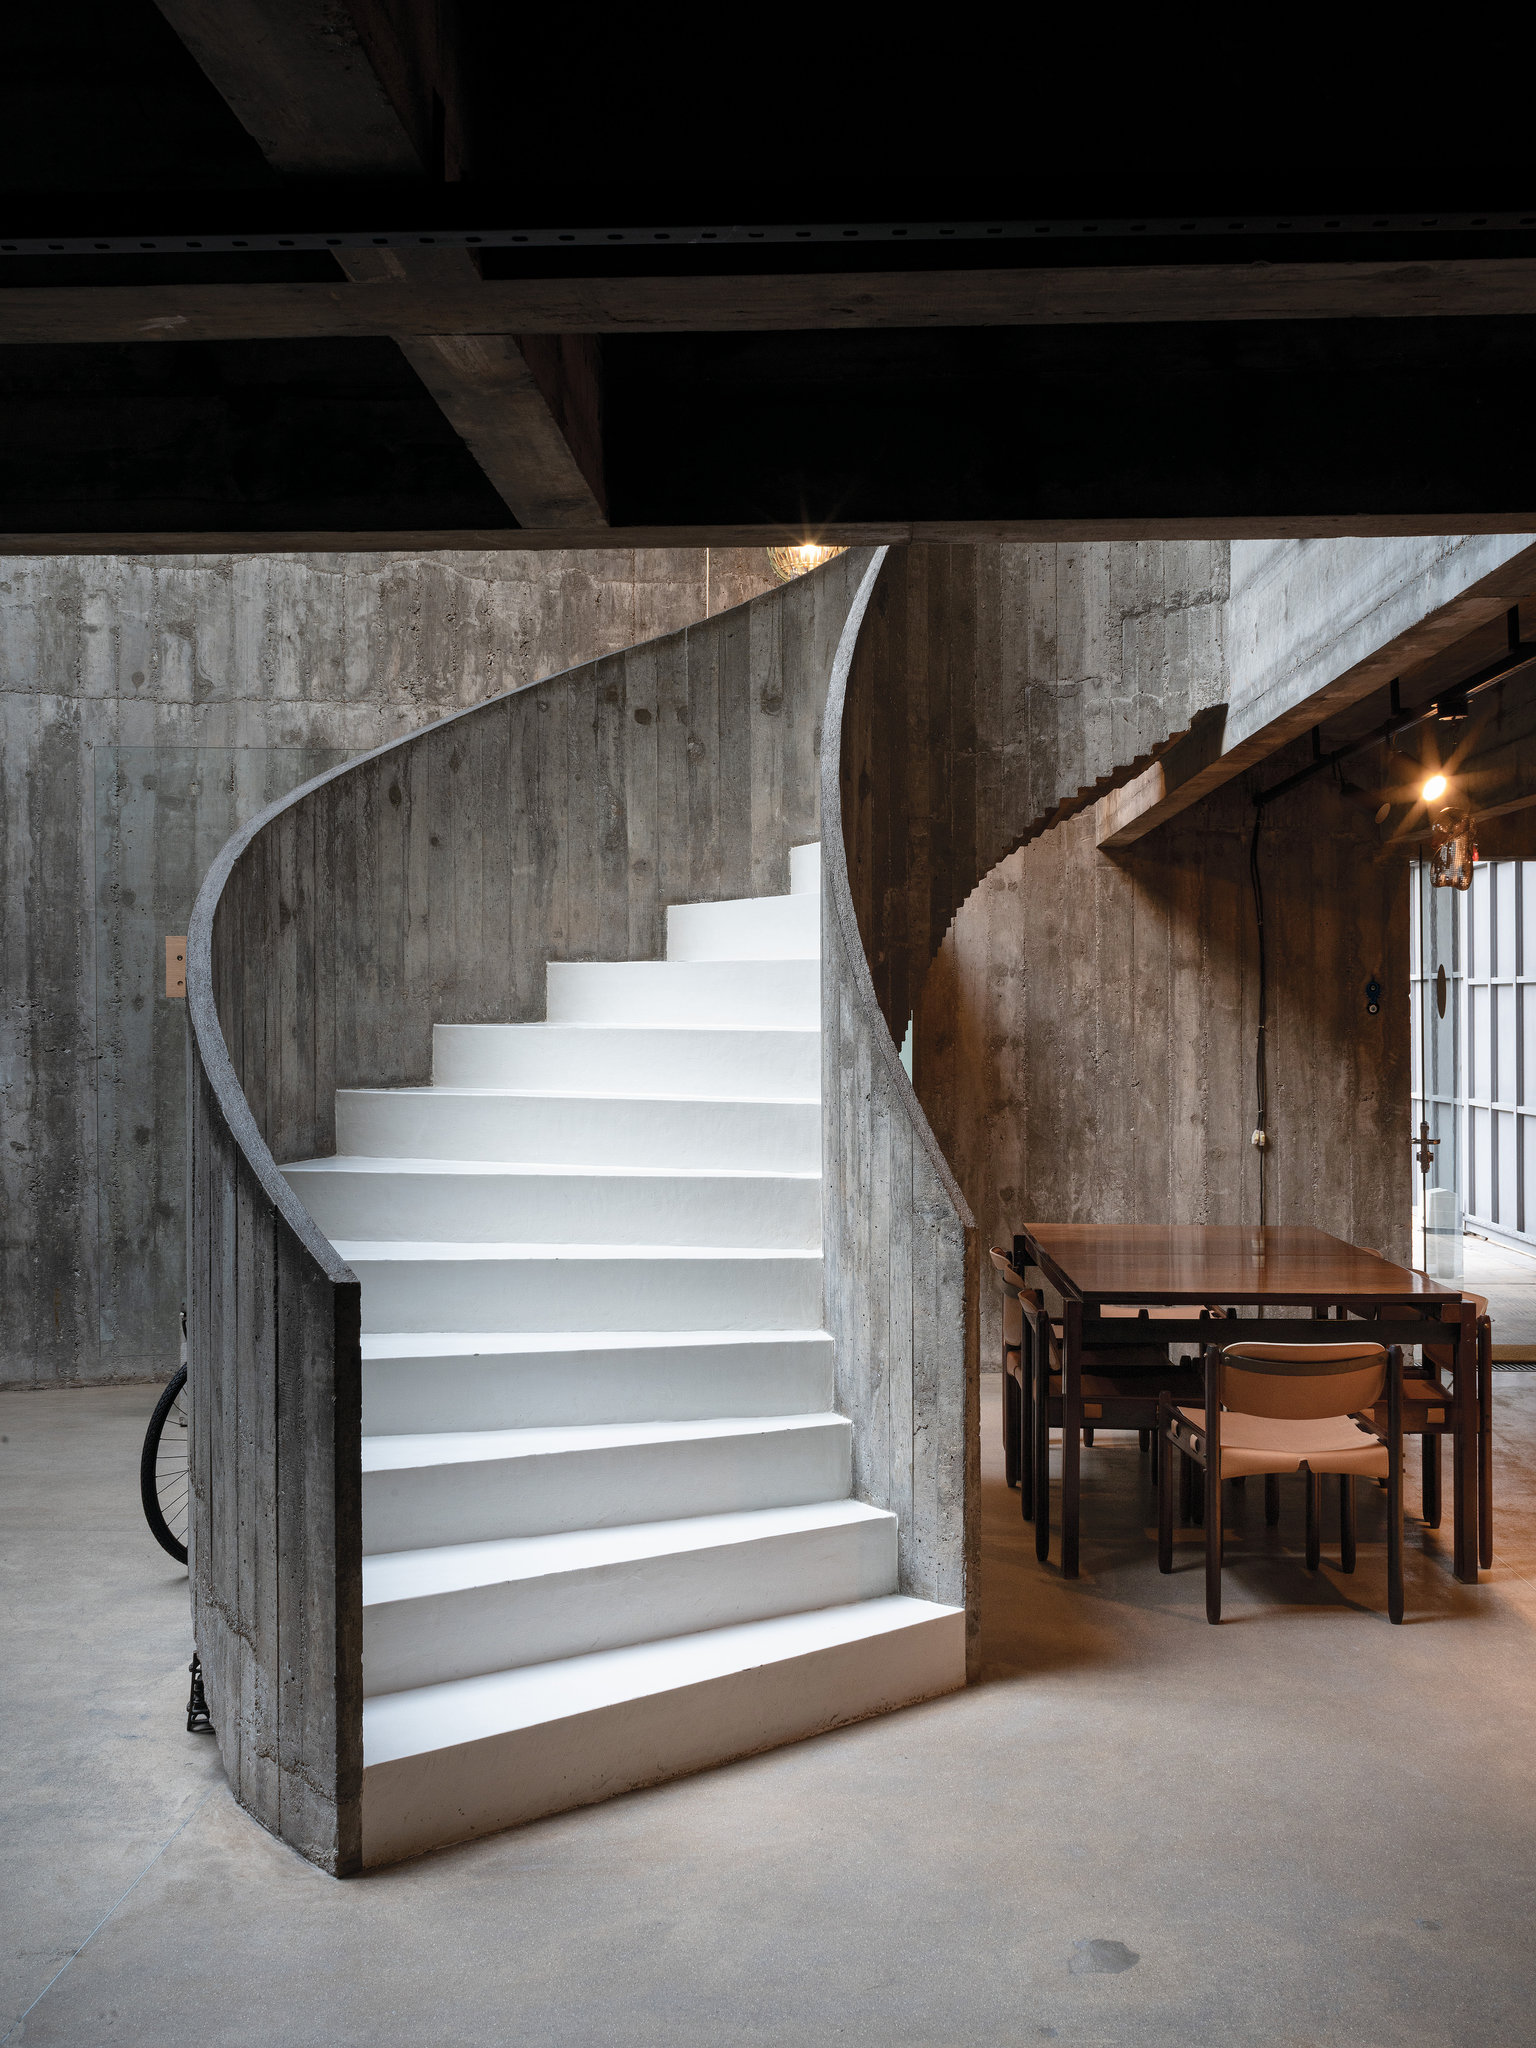 A wood-grain spiral concrete staircase that leads to the five bedrooms of Casa Millán, completed in Cidade Jardim in 1970 by the architect Paulo Mendes da Rocha. The table and chairs beneath it are 1960s-era designs by the Brazilian midcentury Modernist Jorge Zalszupin.CreditTodd Hido  via   New York Times